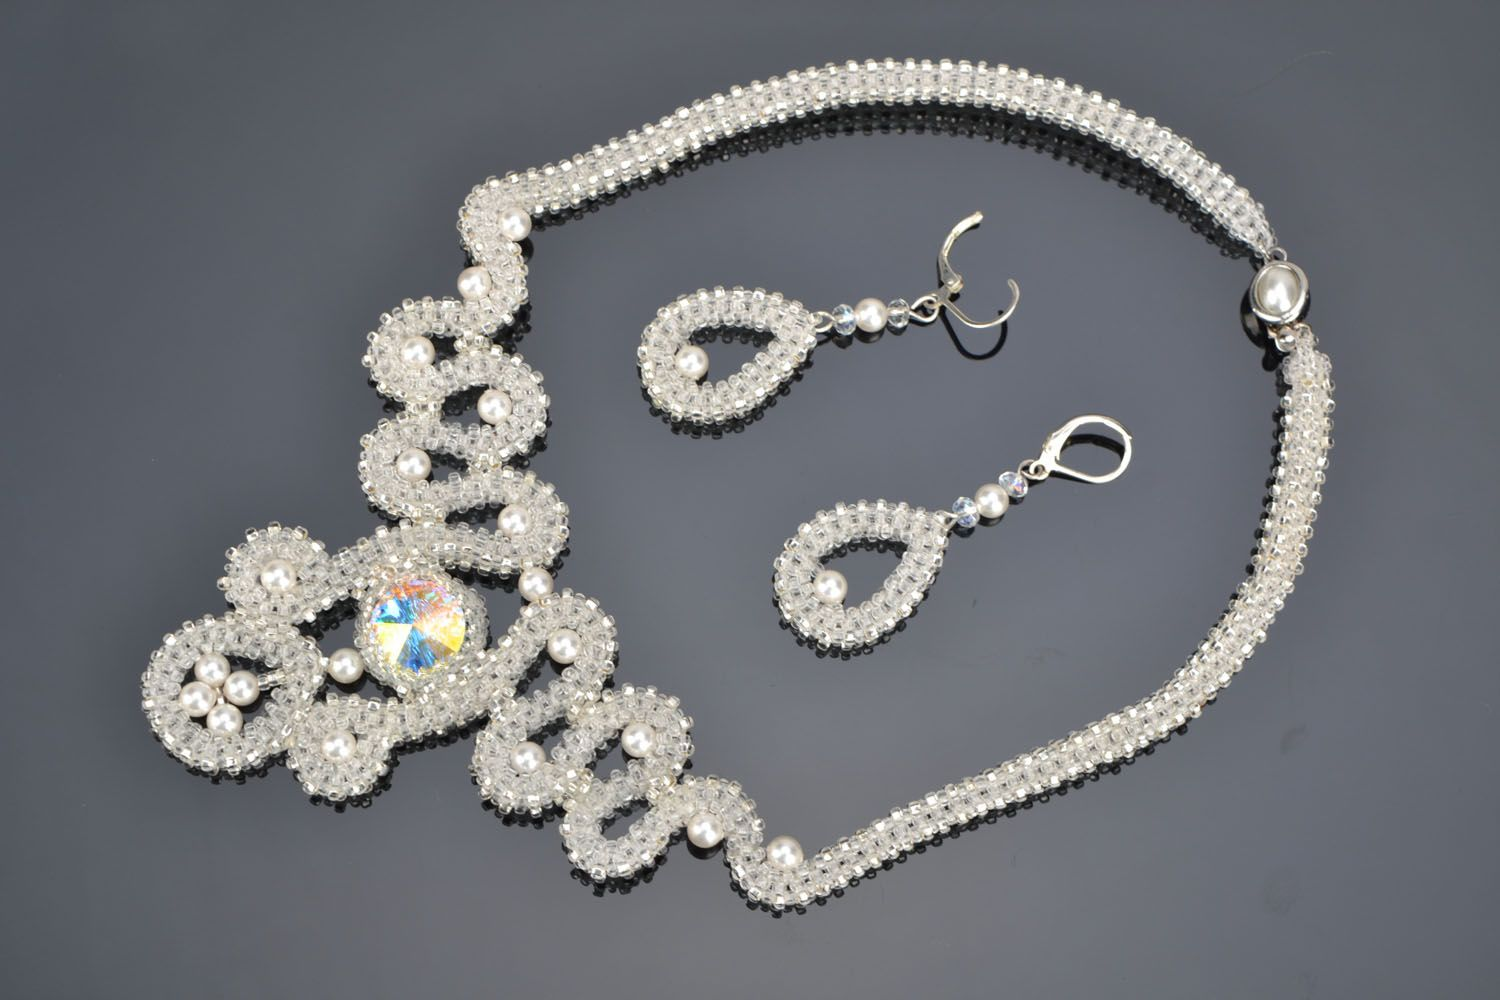 Earrings and necklace with beads and crystals photo 1